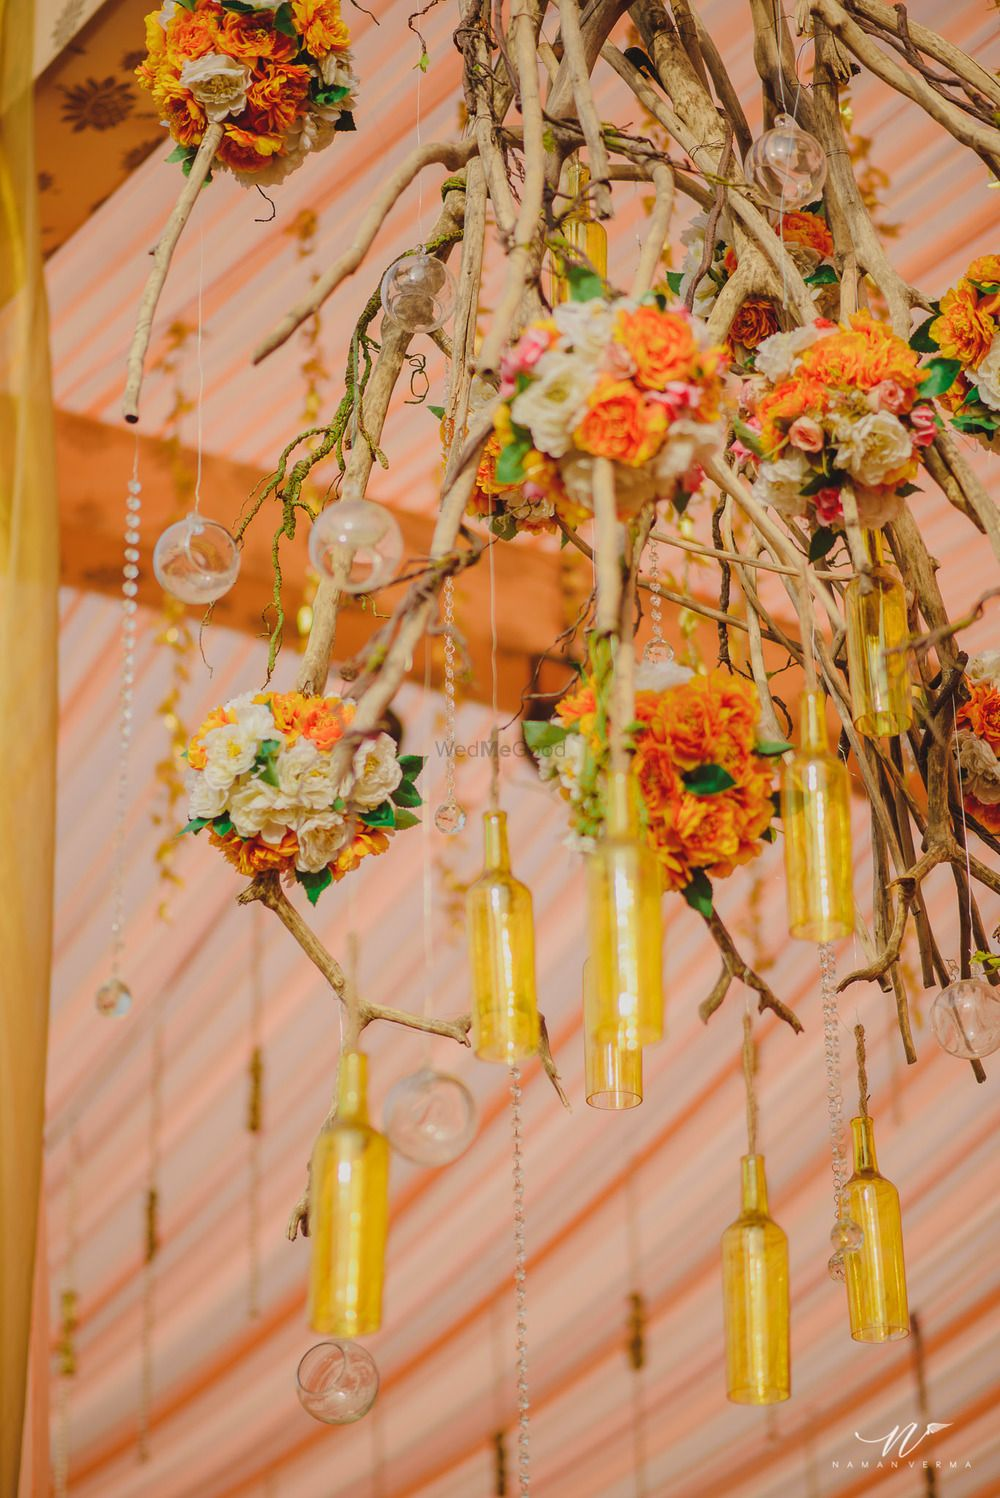 Photo of Bottles and floral suspended